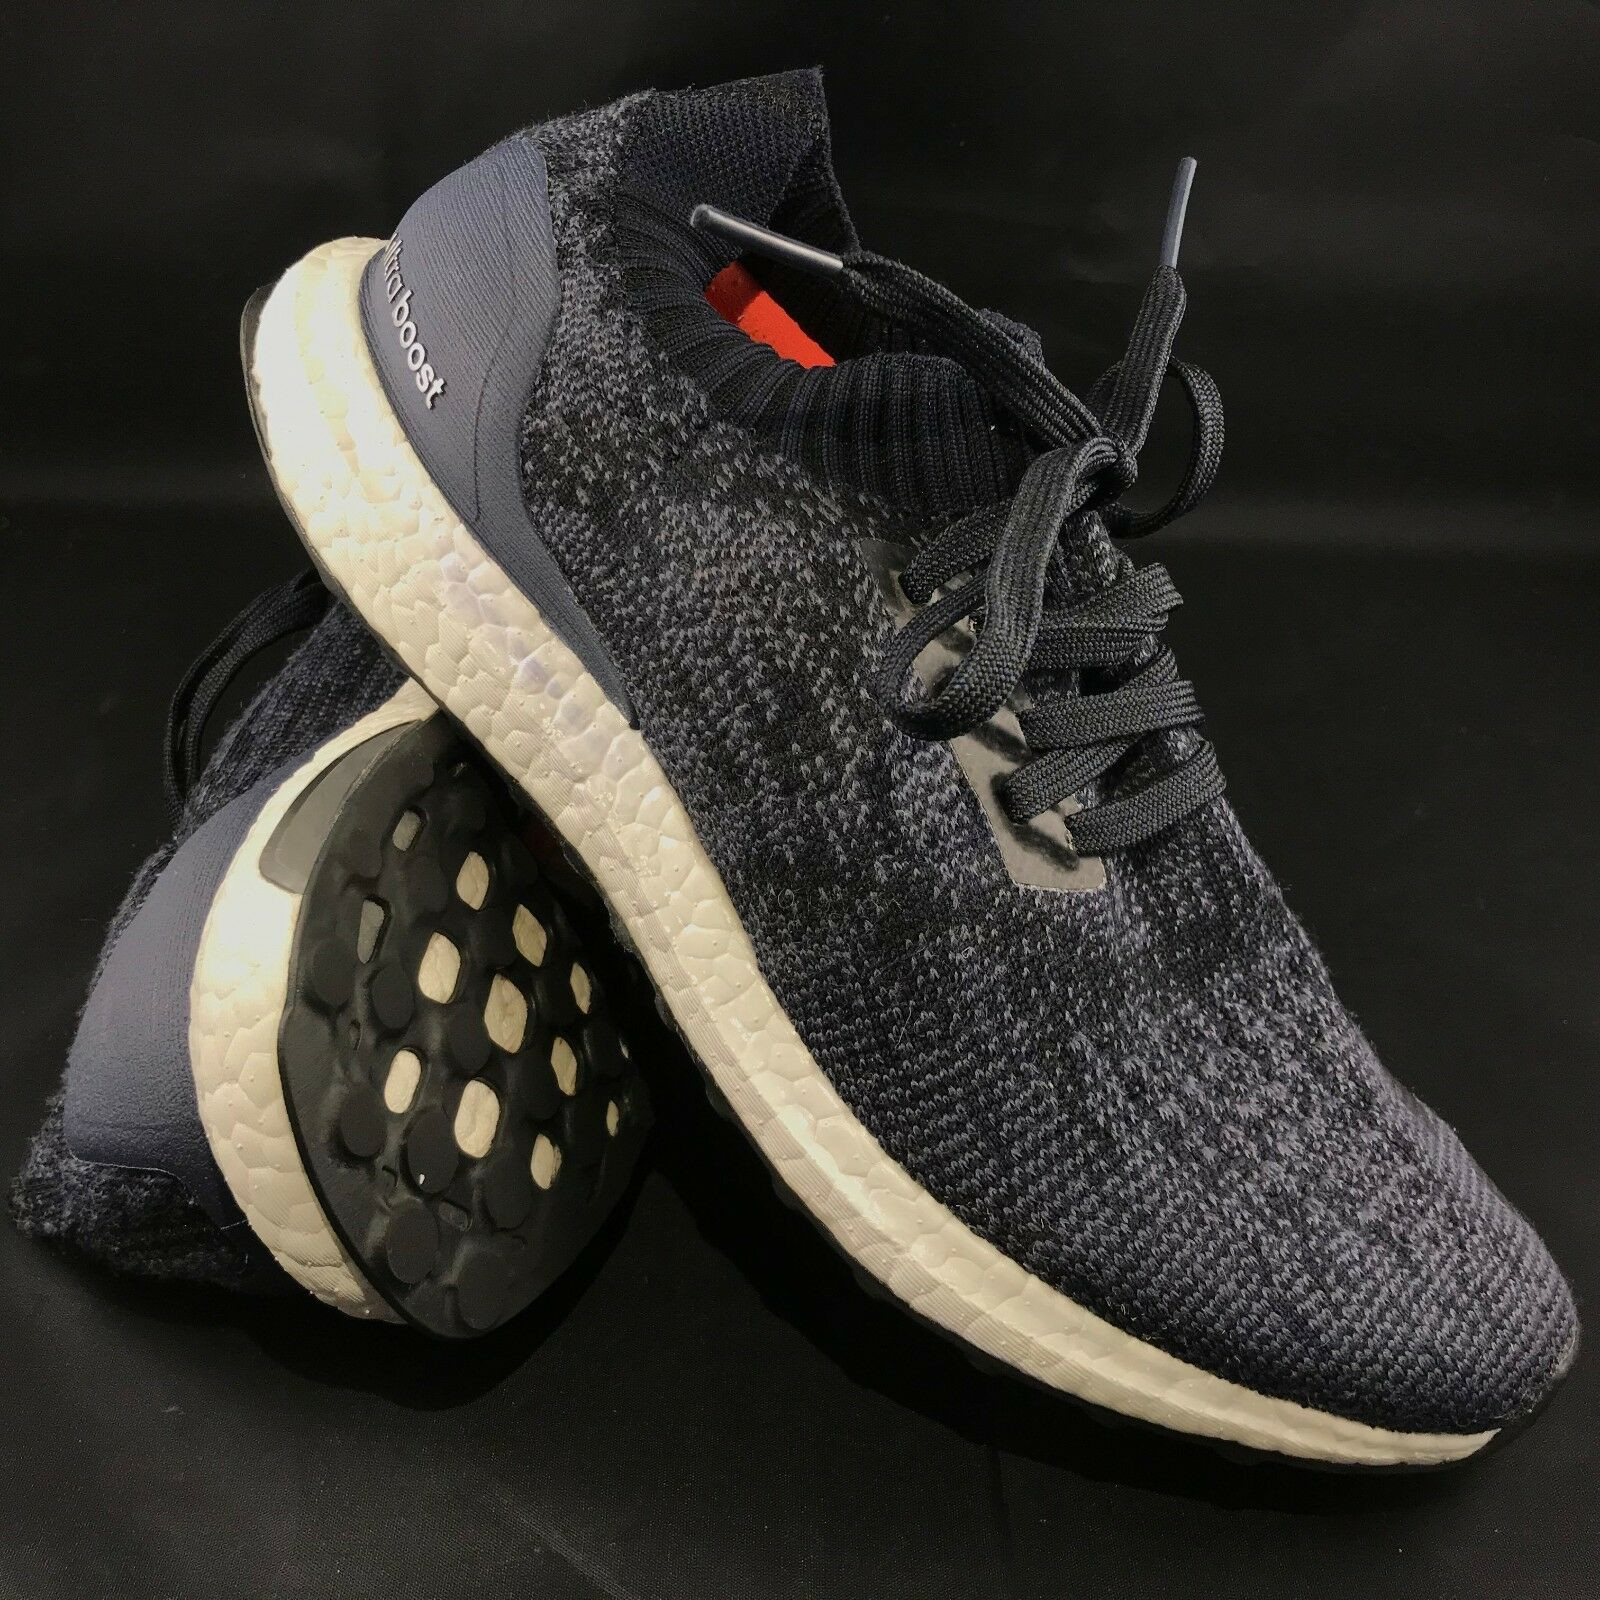 quality design 380af 878db Adidas UltraBoost Ultra Boost uncaged BY2566 Core Black ...